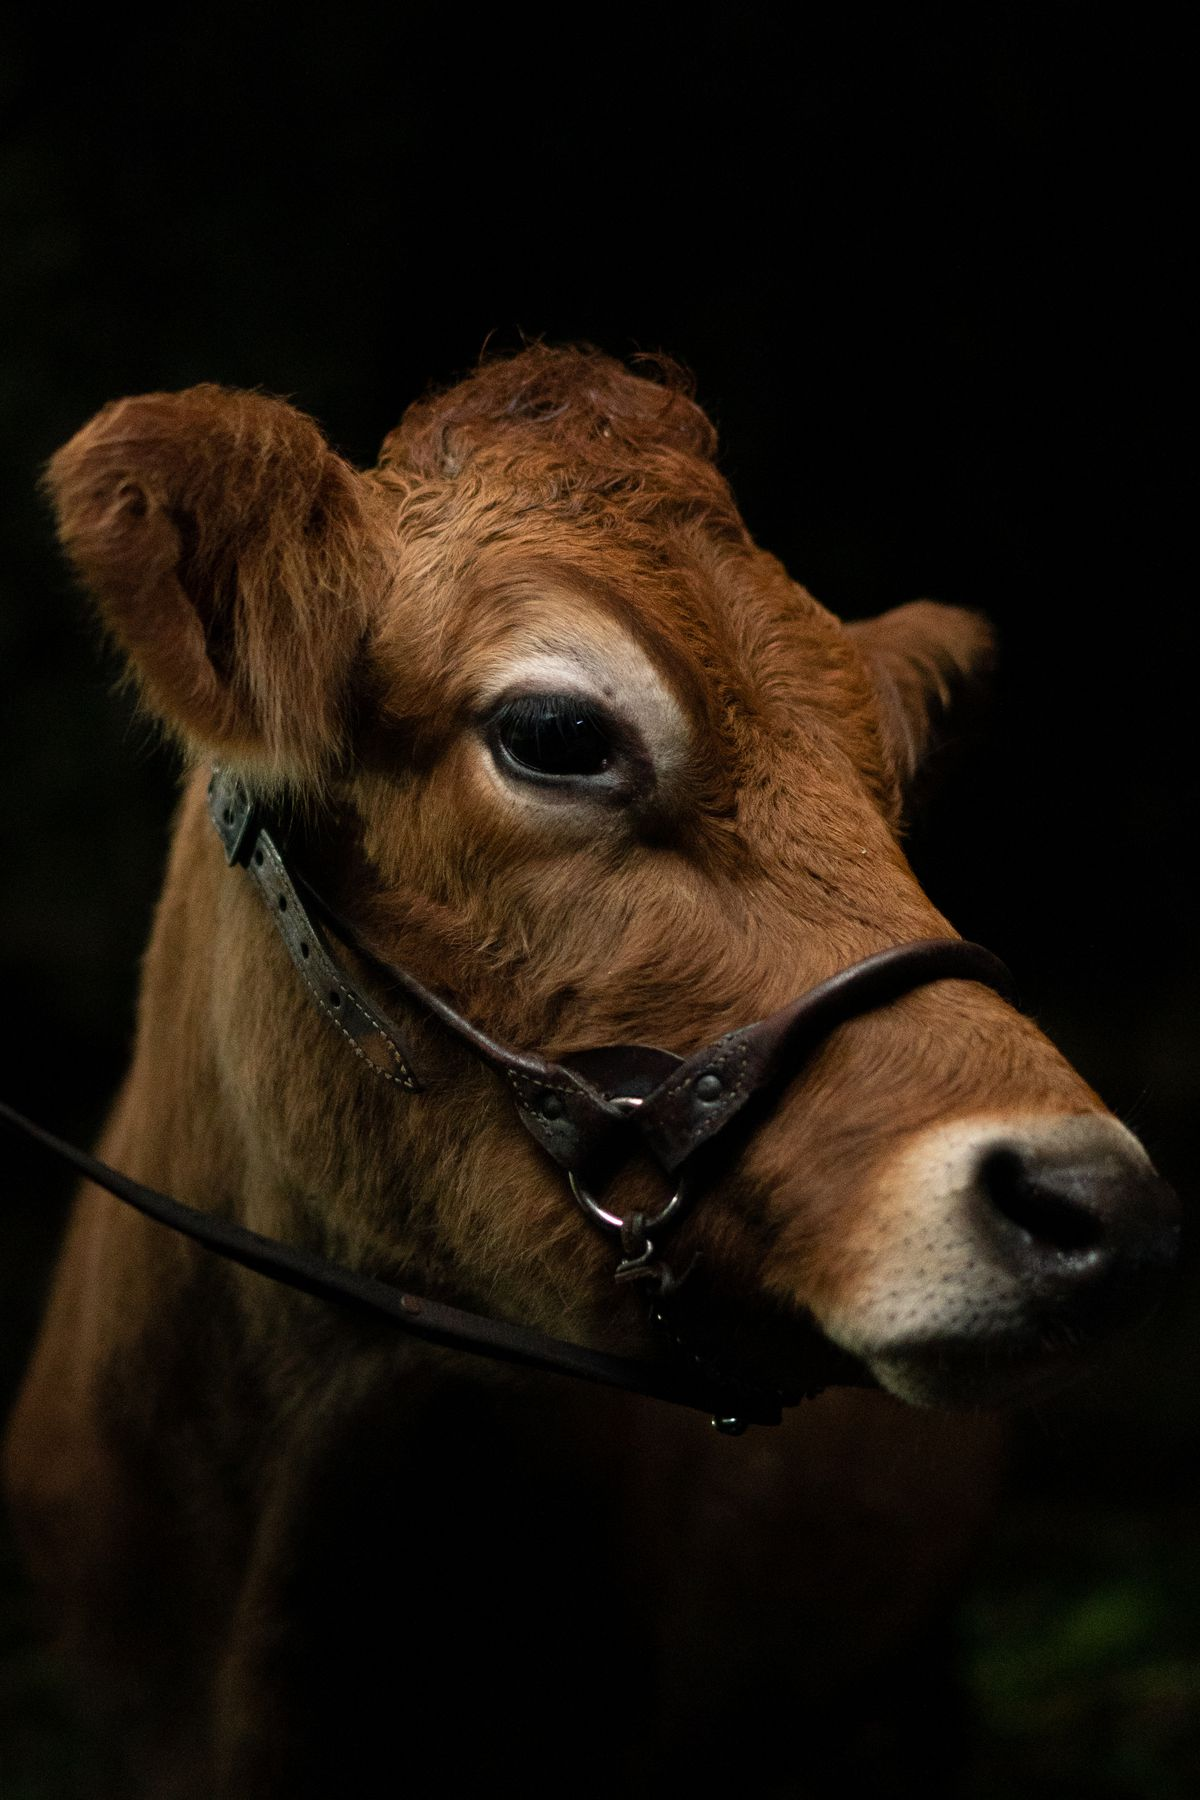 a close-up of a lovely brown Jersey cow